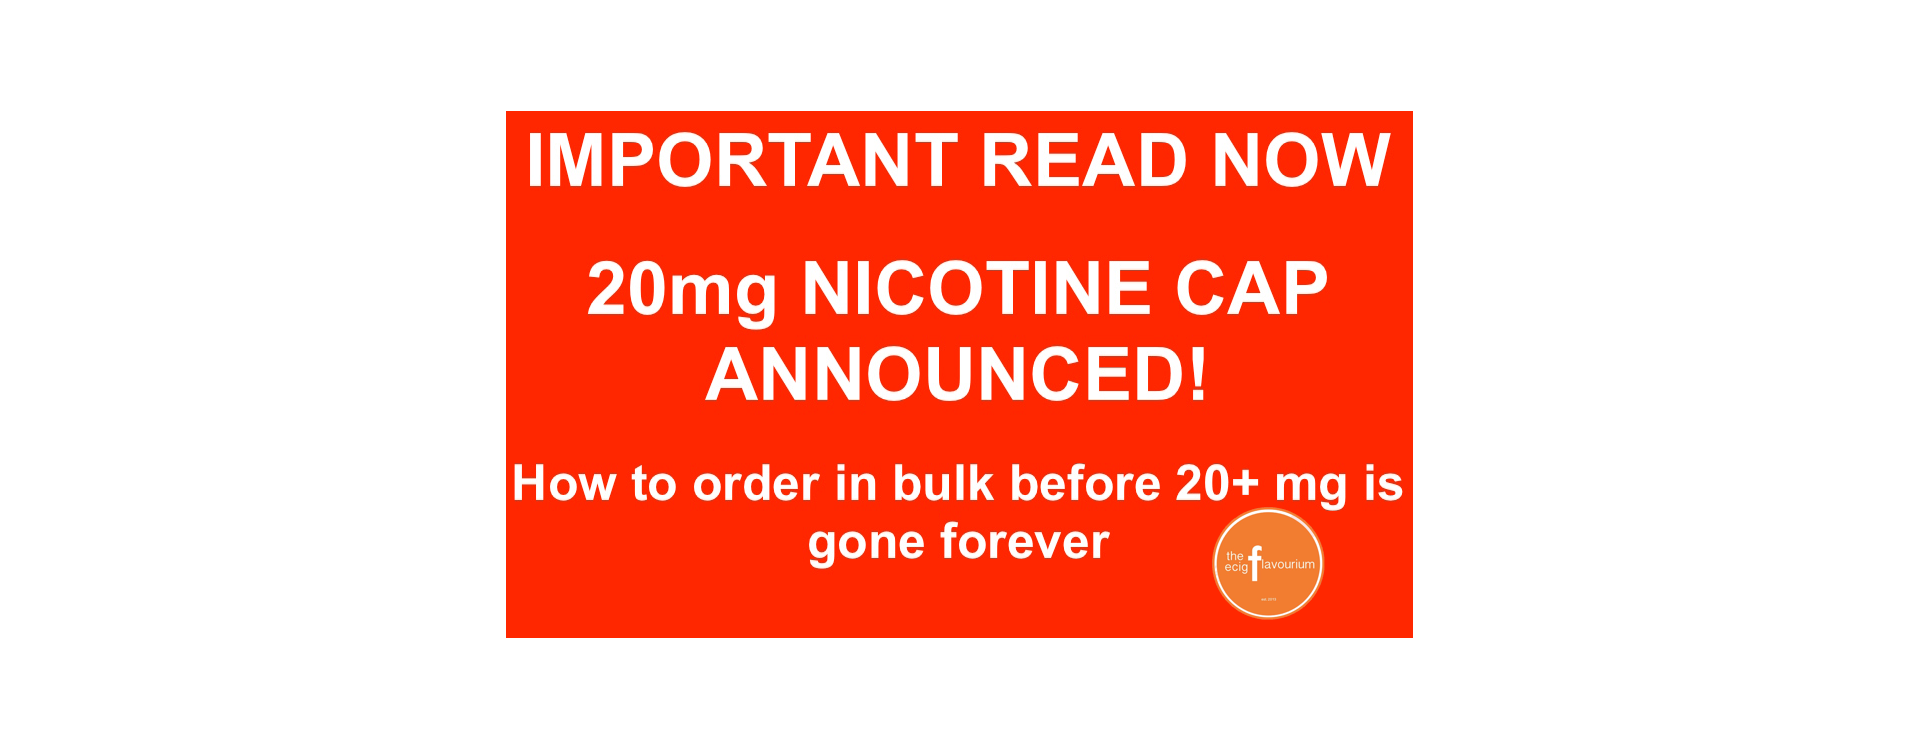 IMPORTANT - Nicotine Cap Announced & How To Order Bulk Before All Is Gone Forever